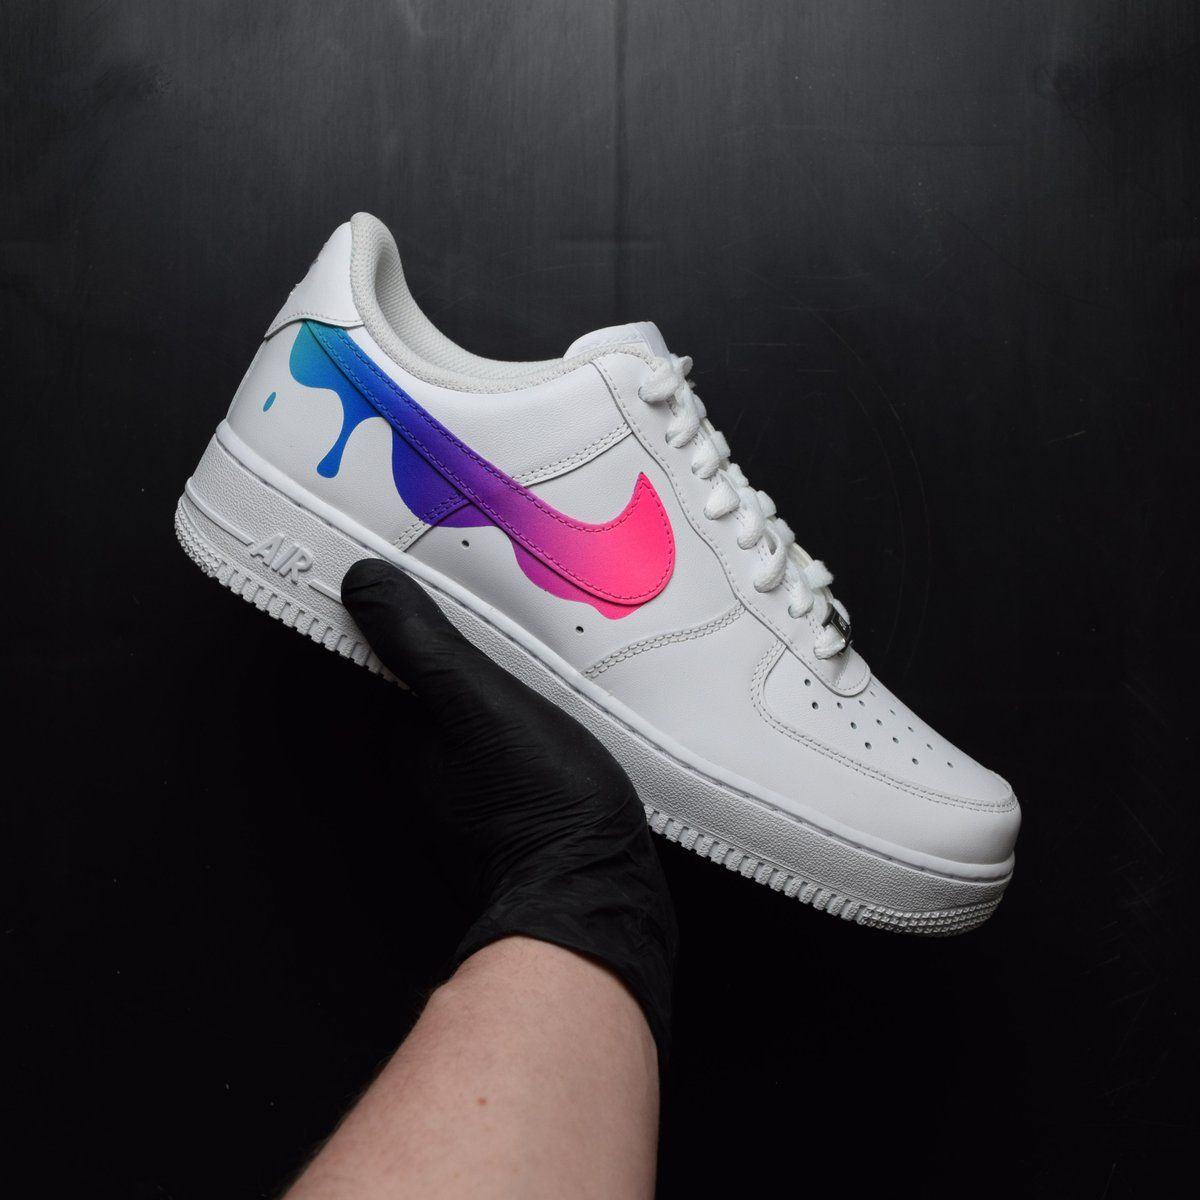 Nike air force 1 paint drip custom shoes in 2020 Nike